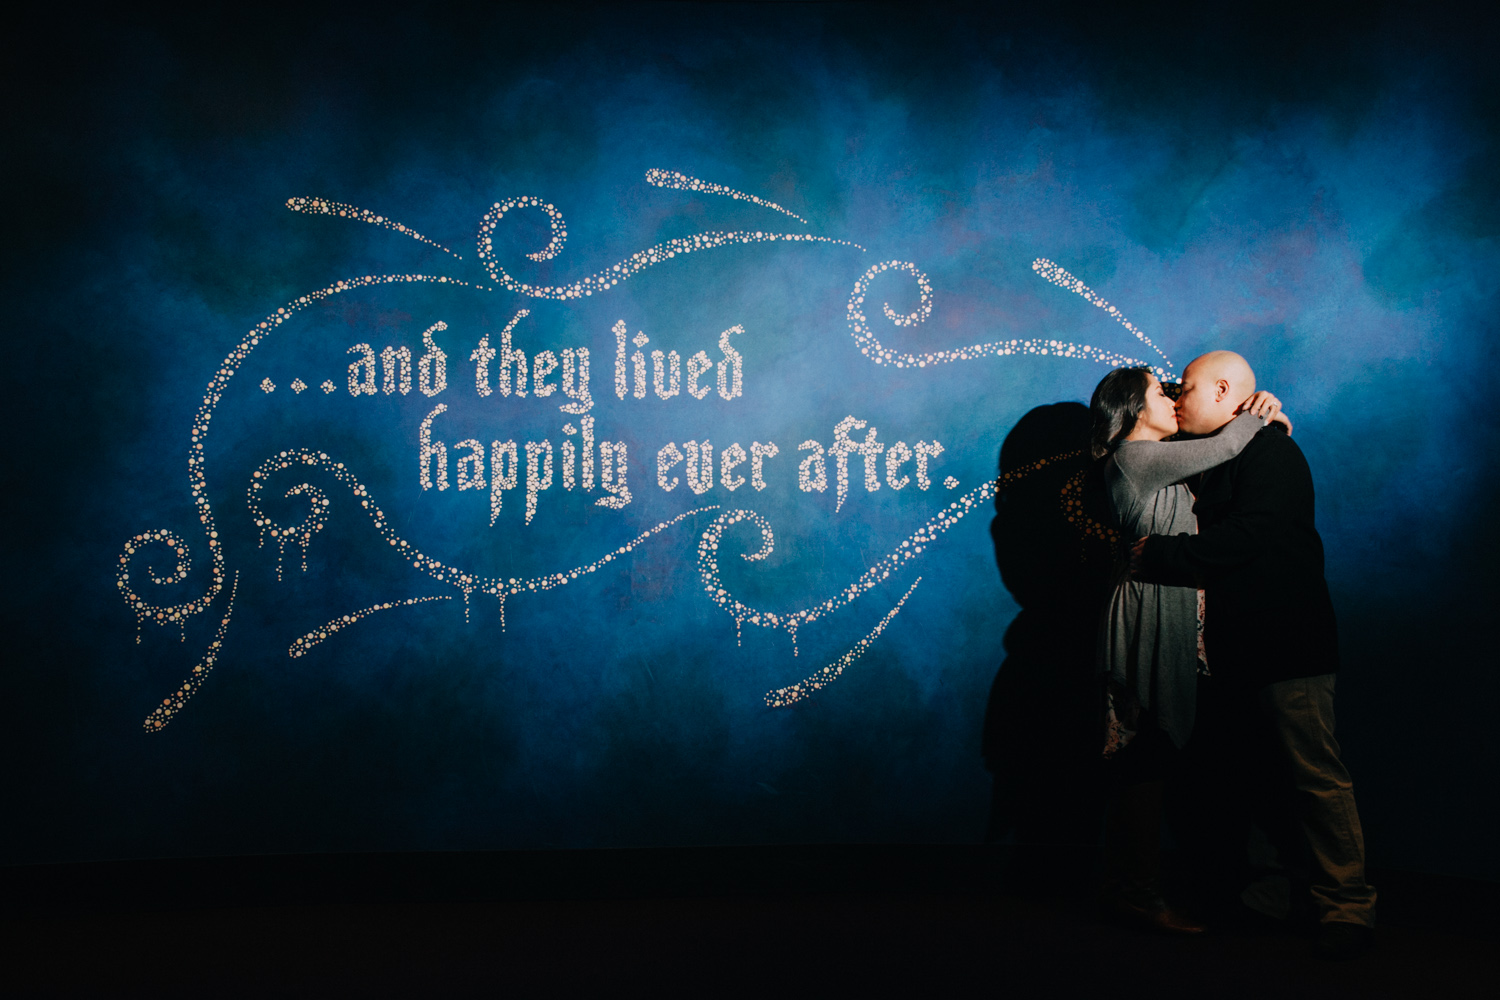 disneyland resort engagement-8528.jpg